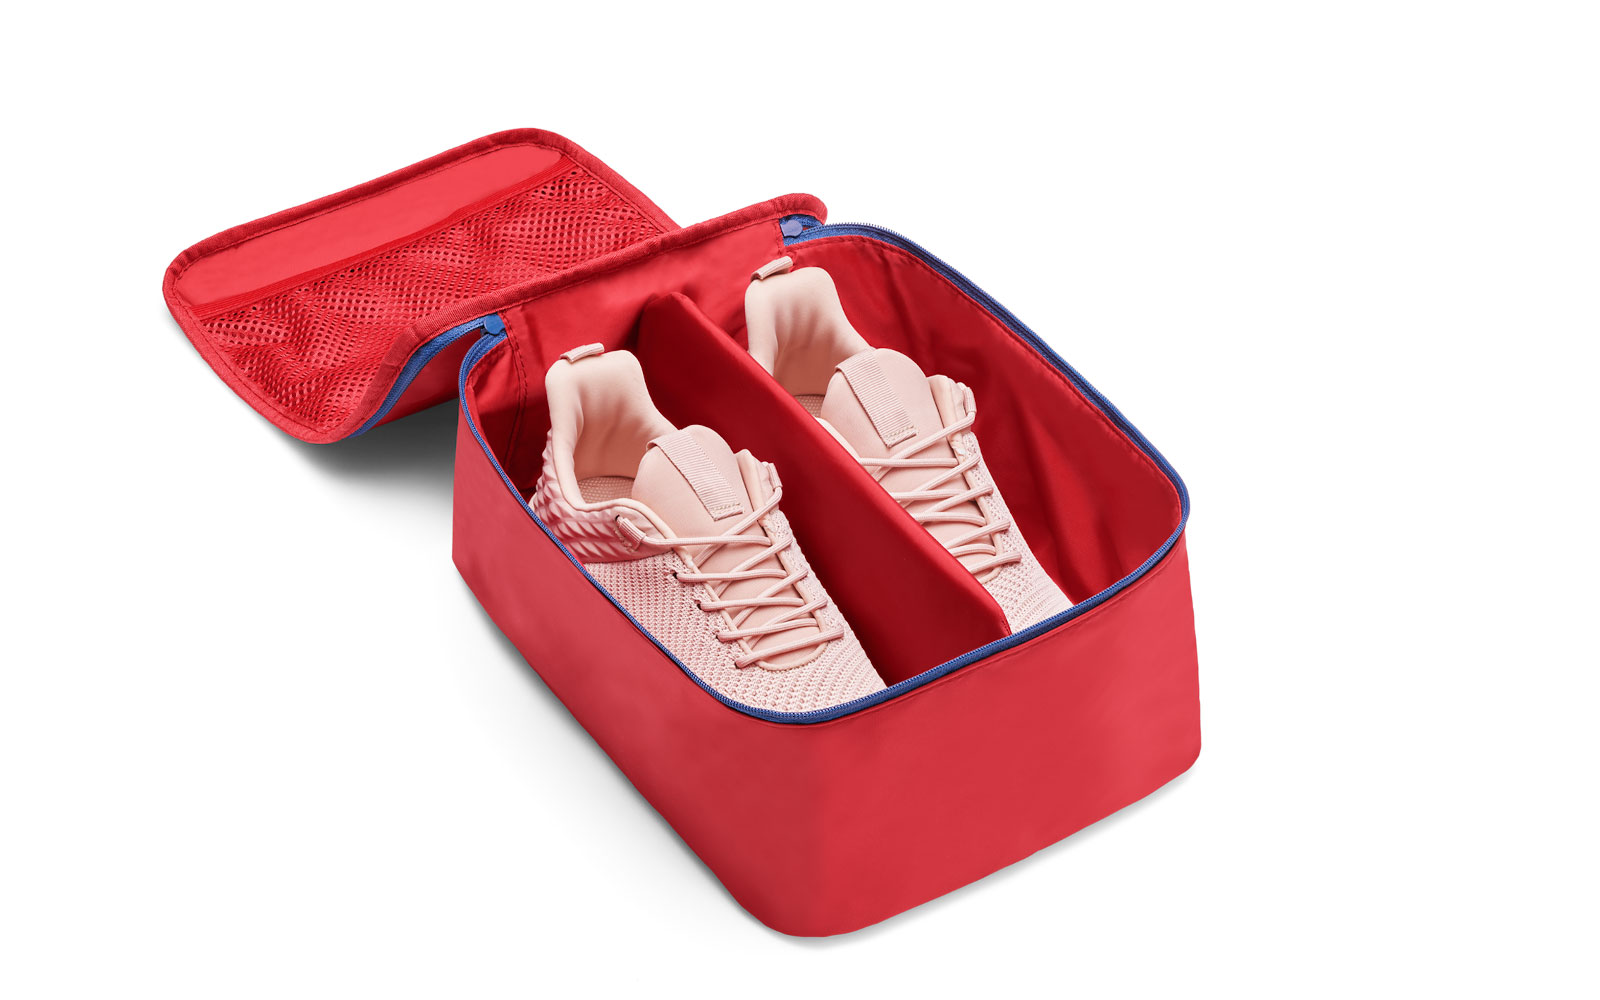 Red Shoe Packing Cube